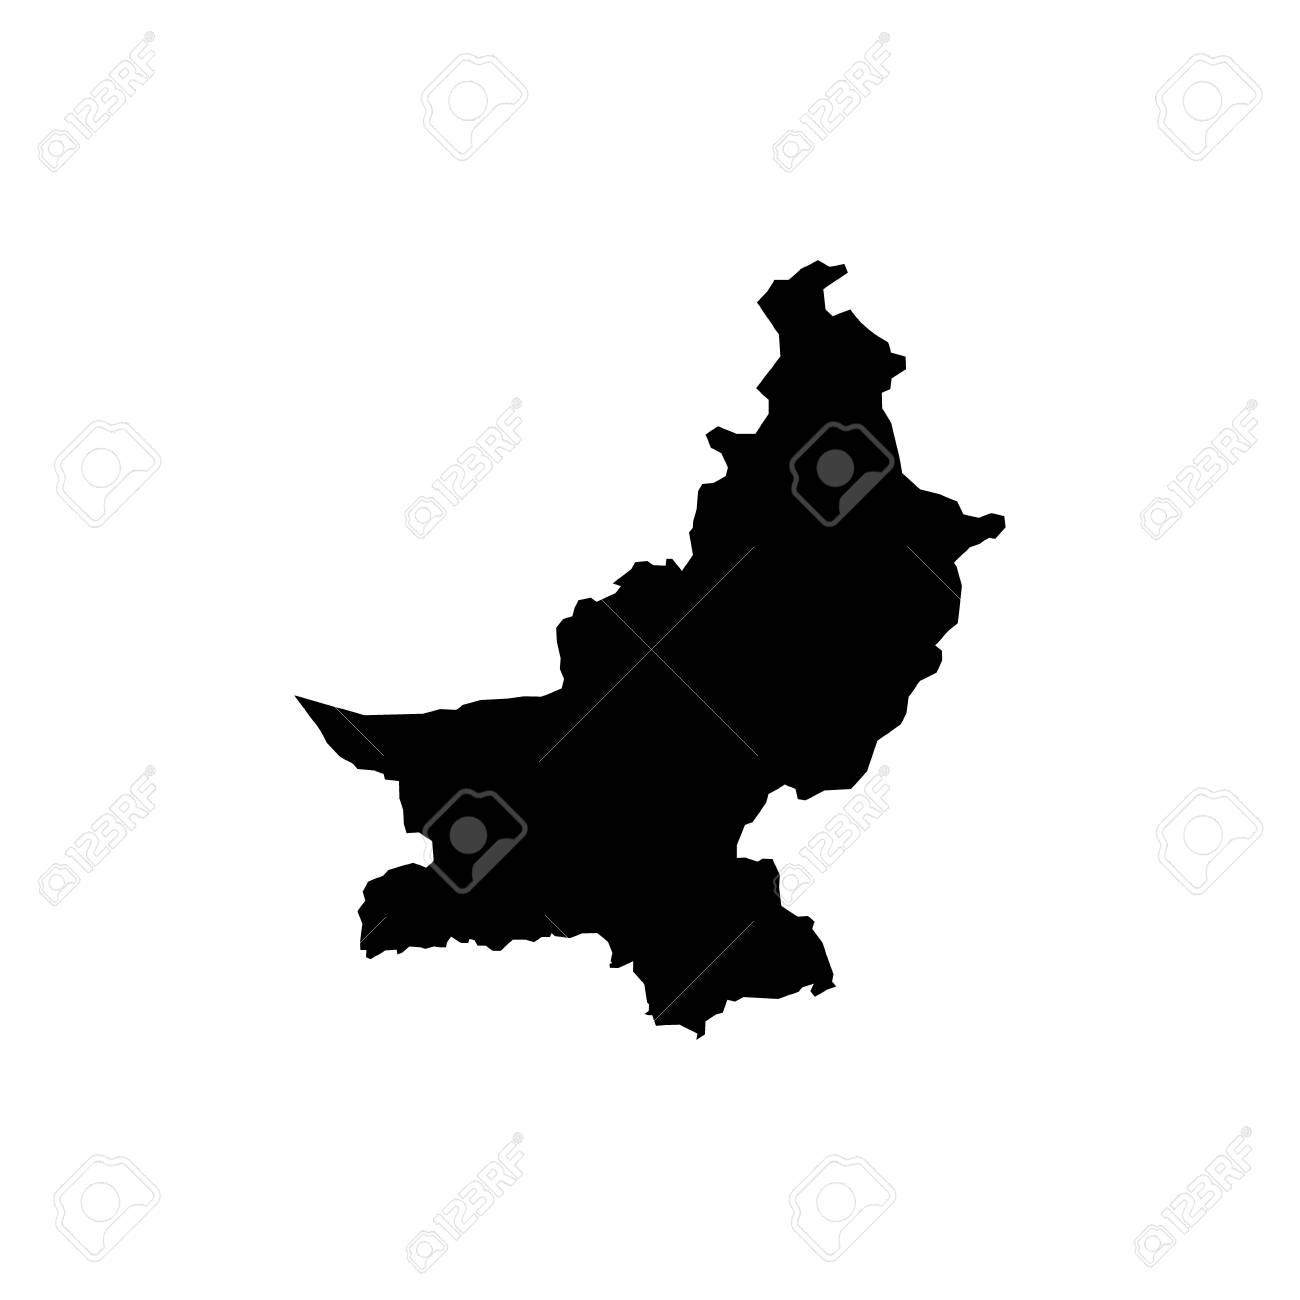 Outline map of Pakistan  Isolated vector illustration